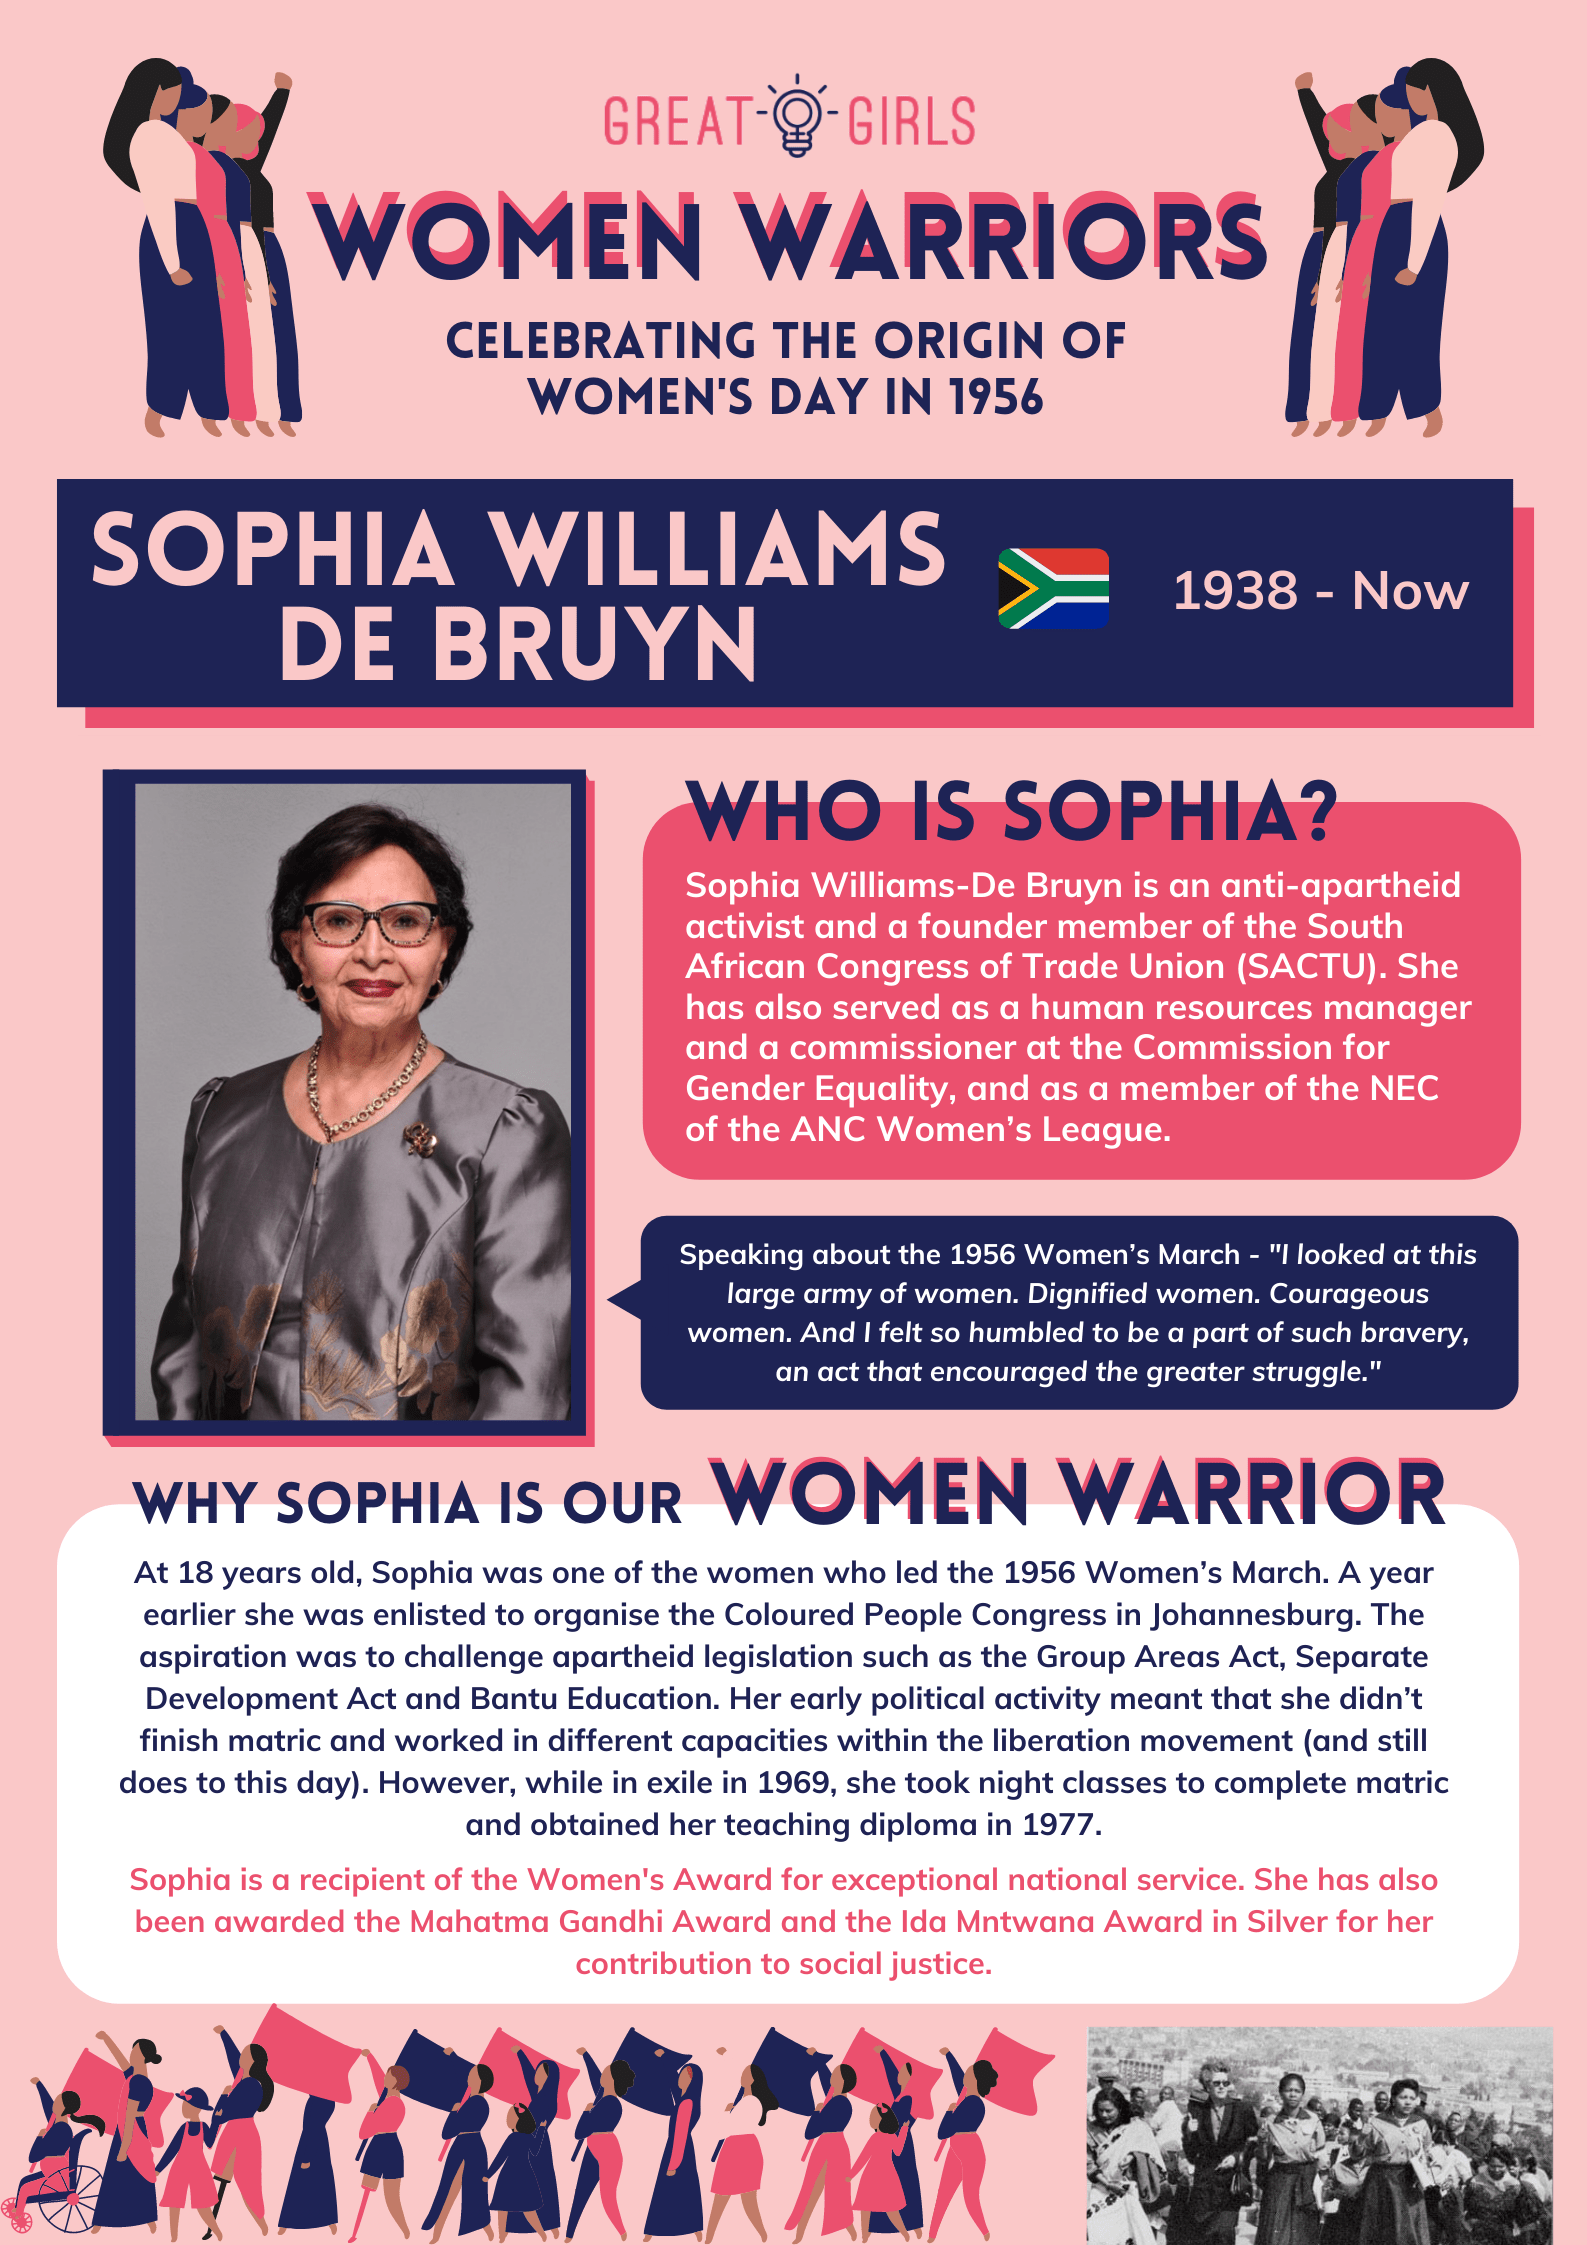 Women Warrior - Sophia Williams De Bruyn